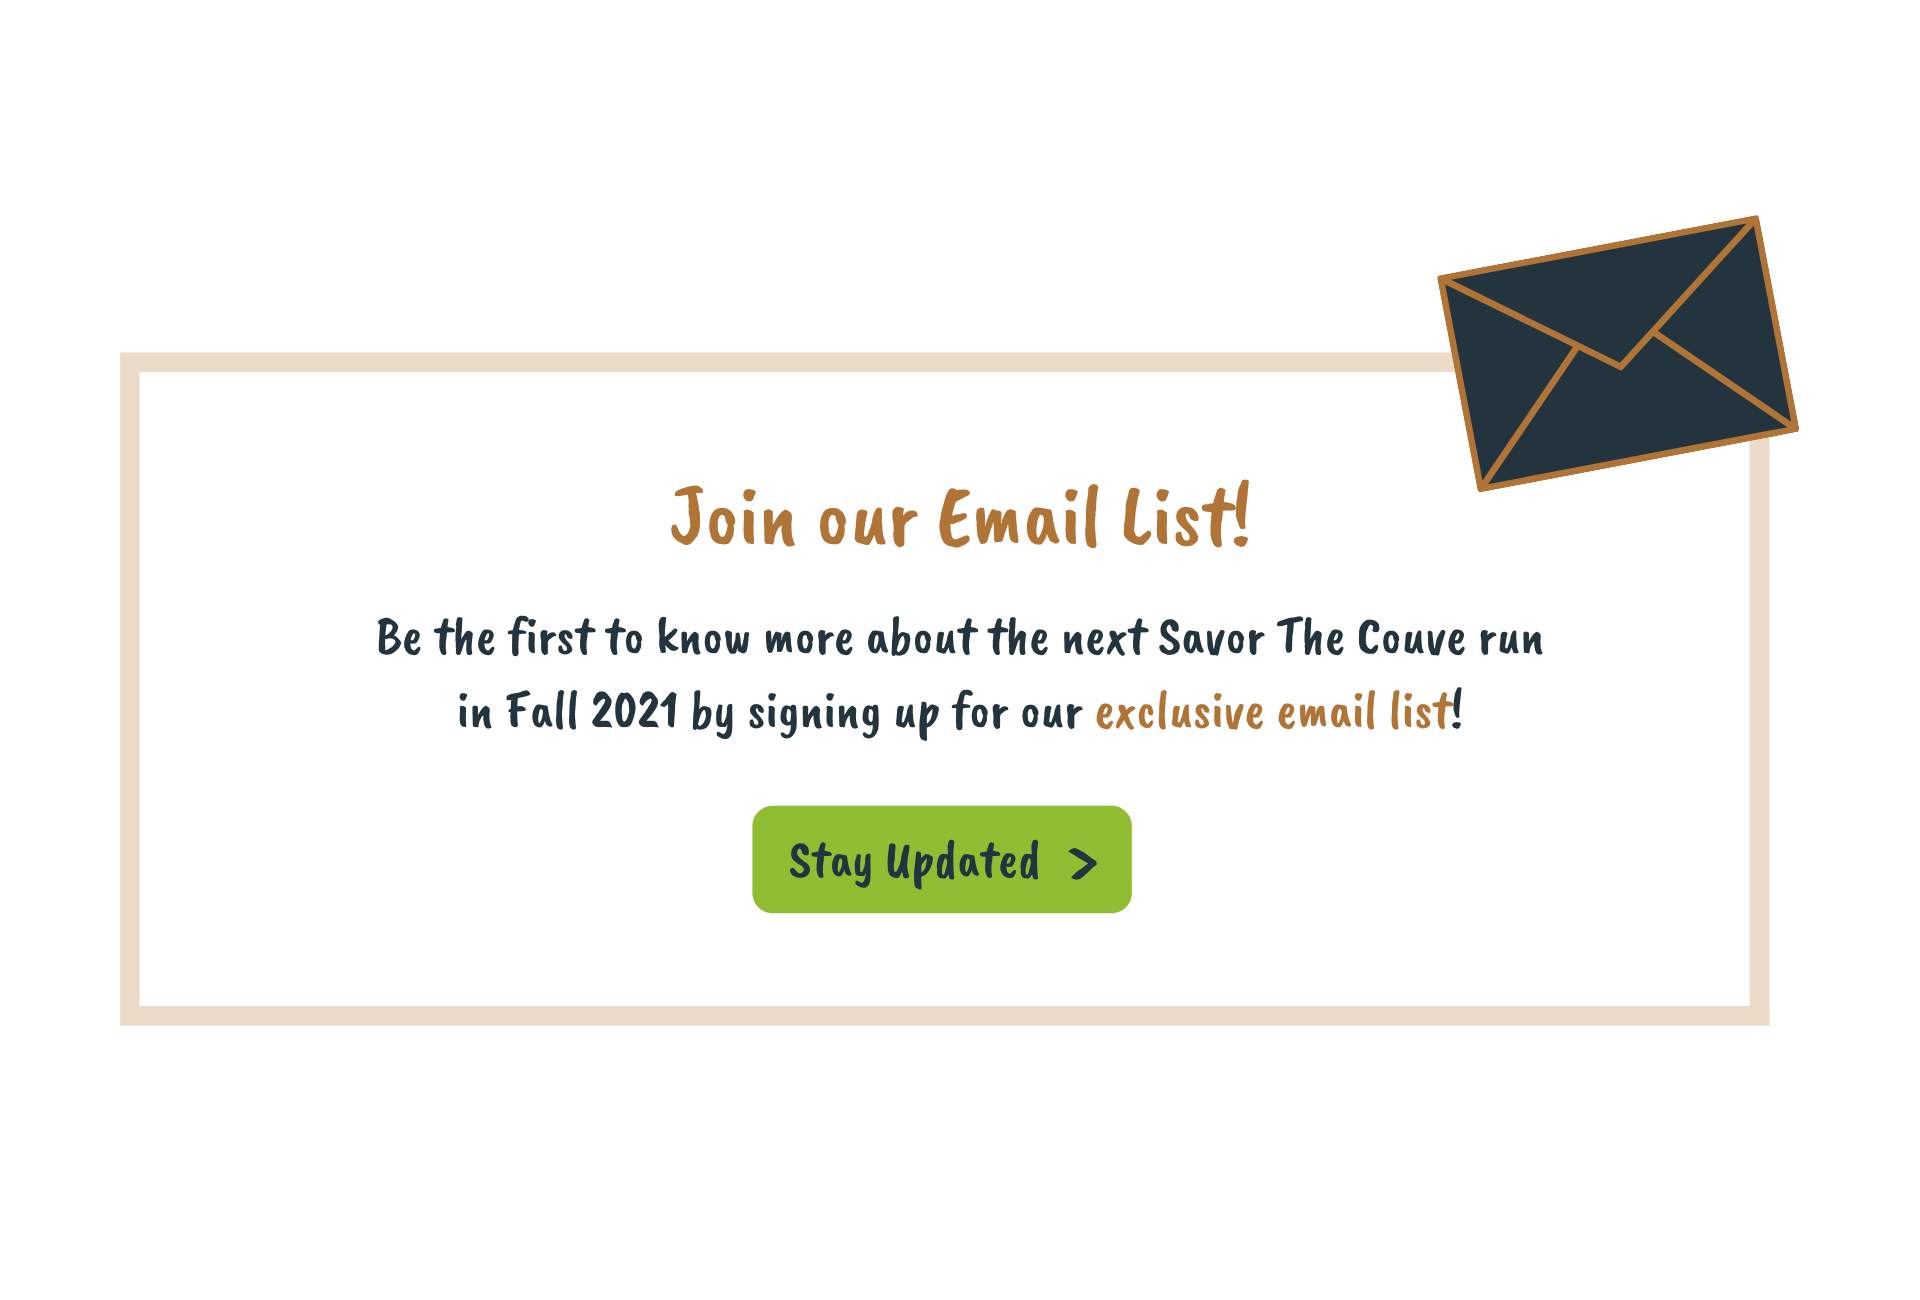 email list button CTA join our email list be the first to know more about the next savor the couve run in fall 2021 by signing up for our exclusive email list stay updated arrow